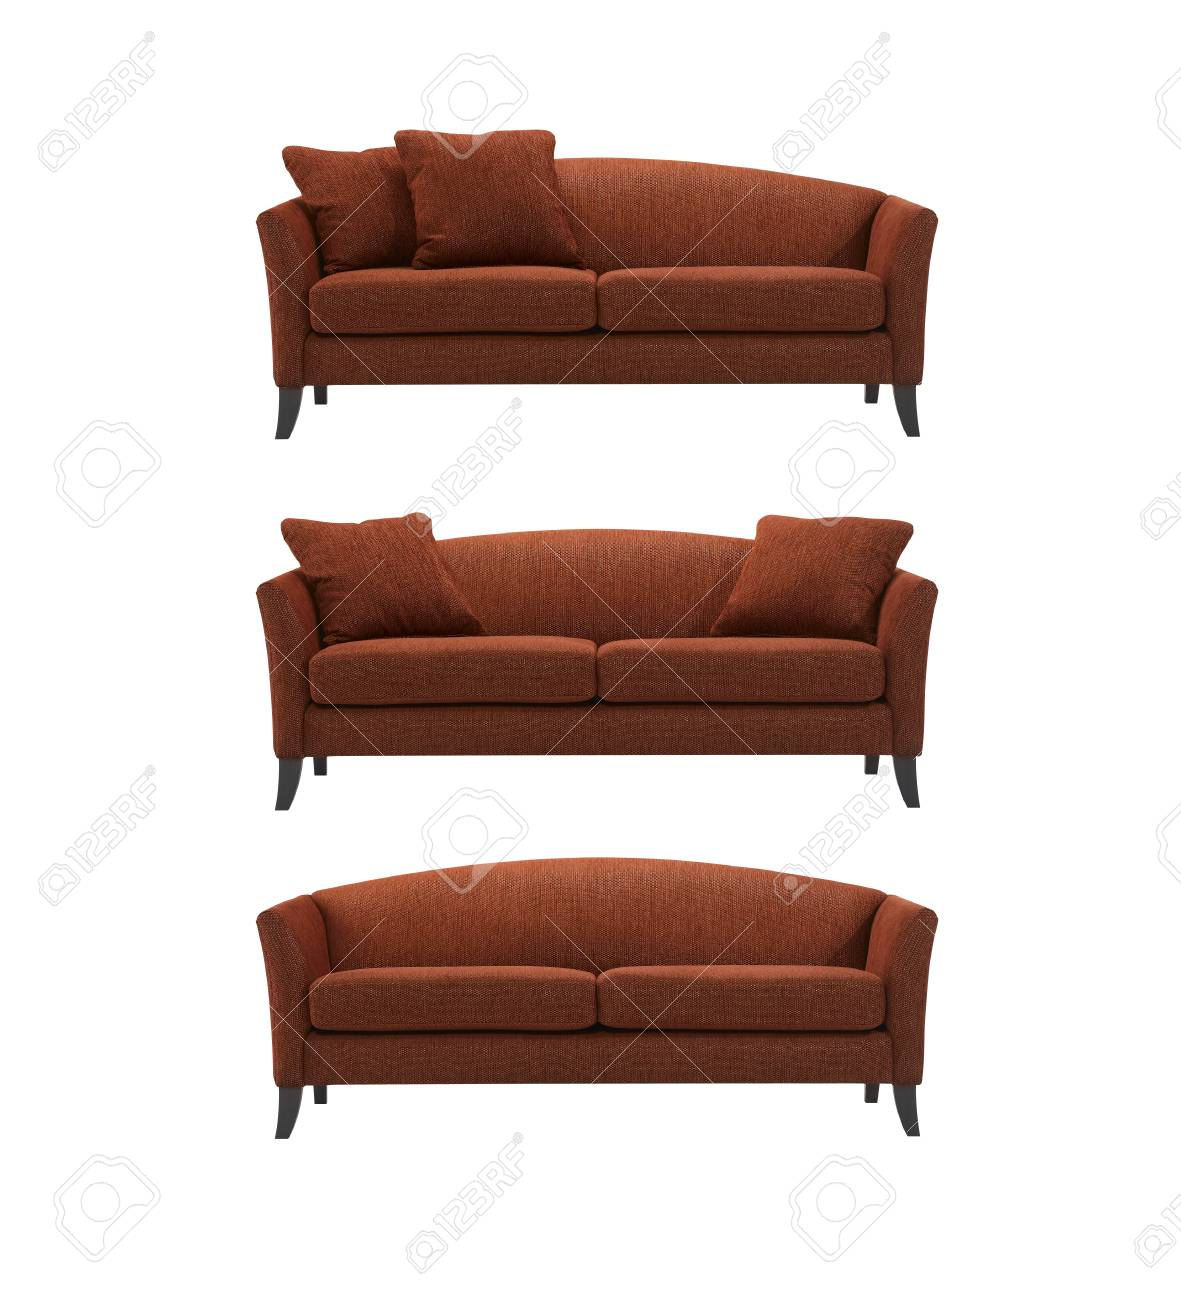 Red Curved Sofa, With And Without Pillows, Isolated On White.. Stock ...